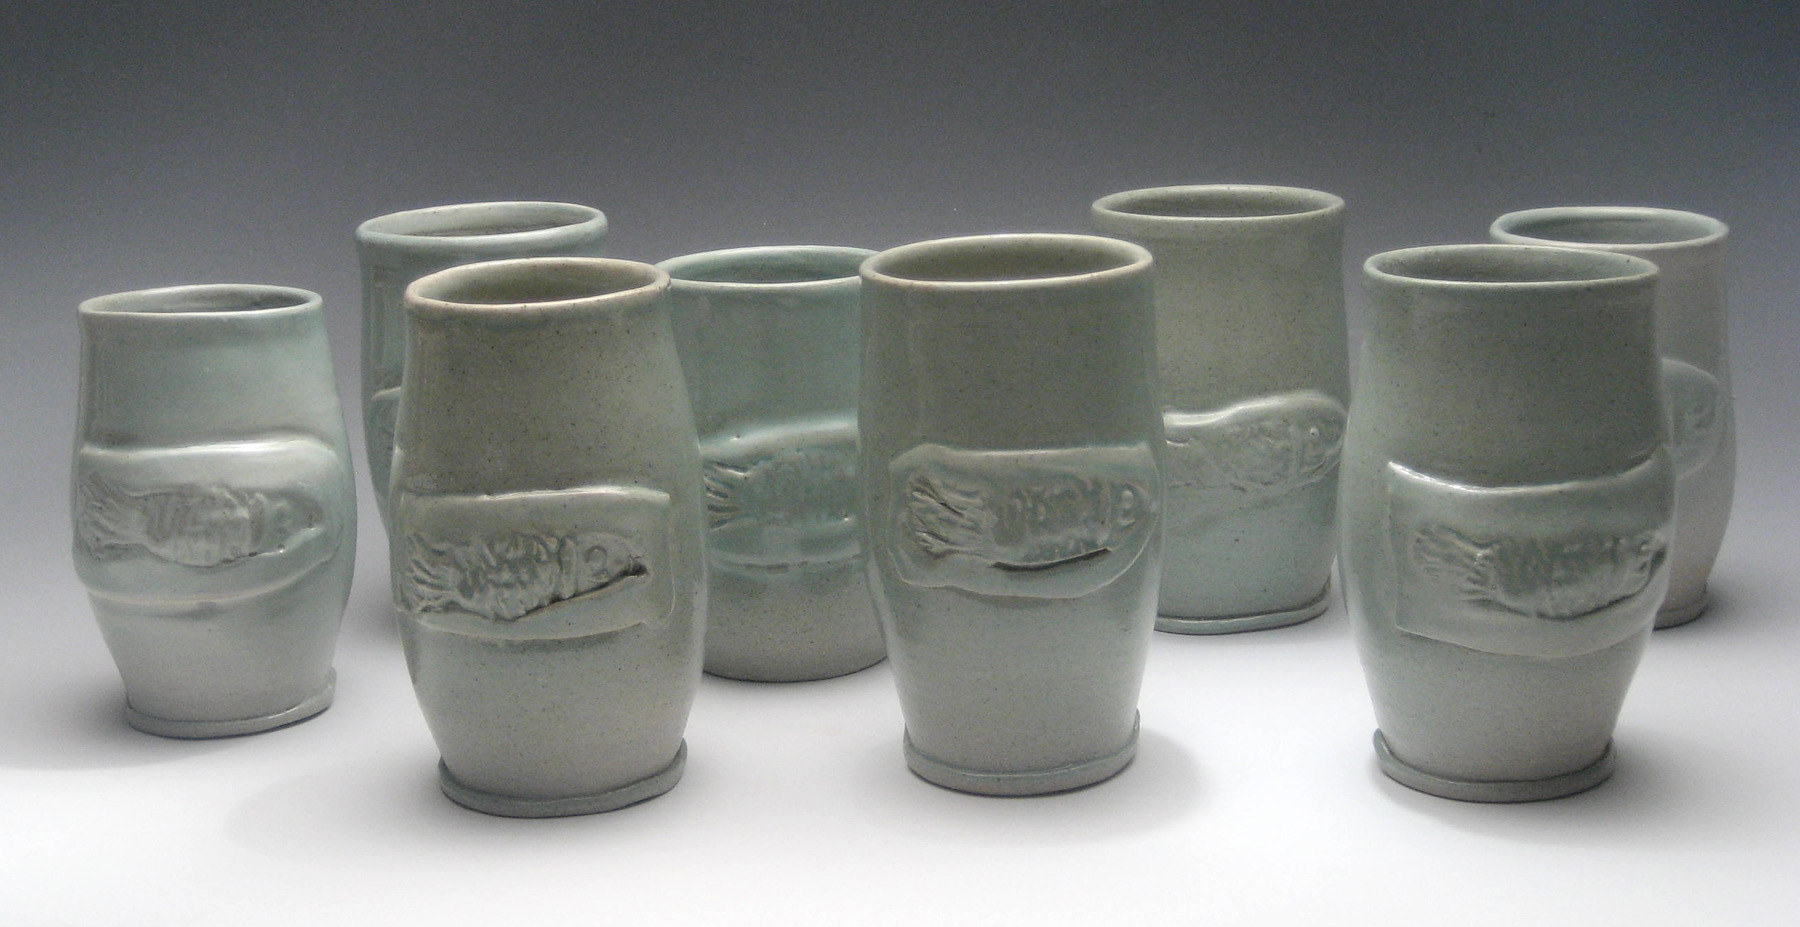 10 Goblets by Sharon V Smith